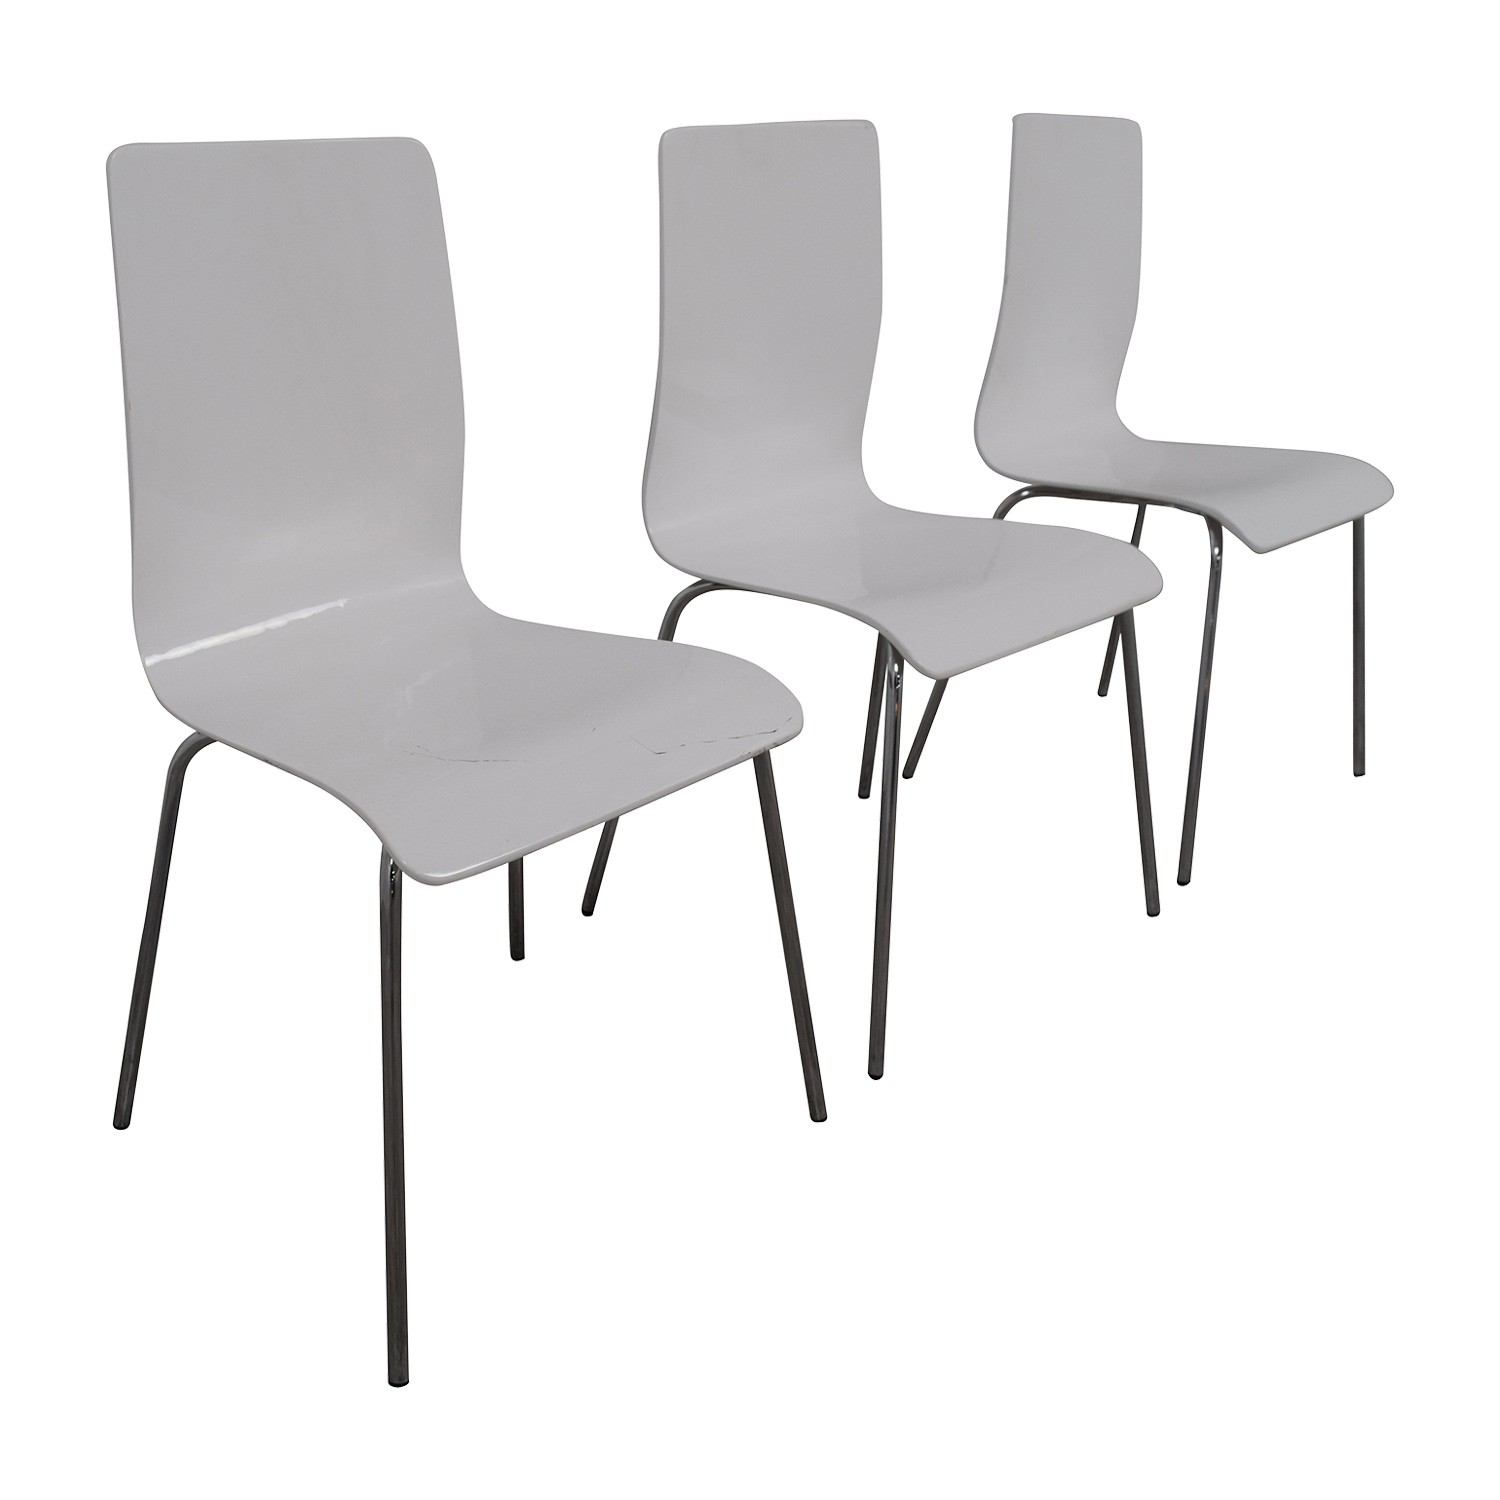 Newspec Modern Glossy White Dining Chairs sale